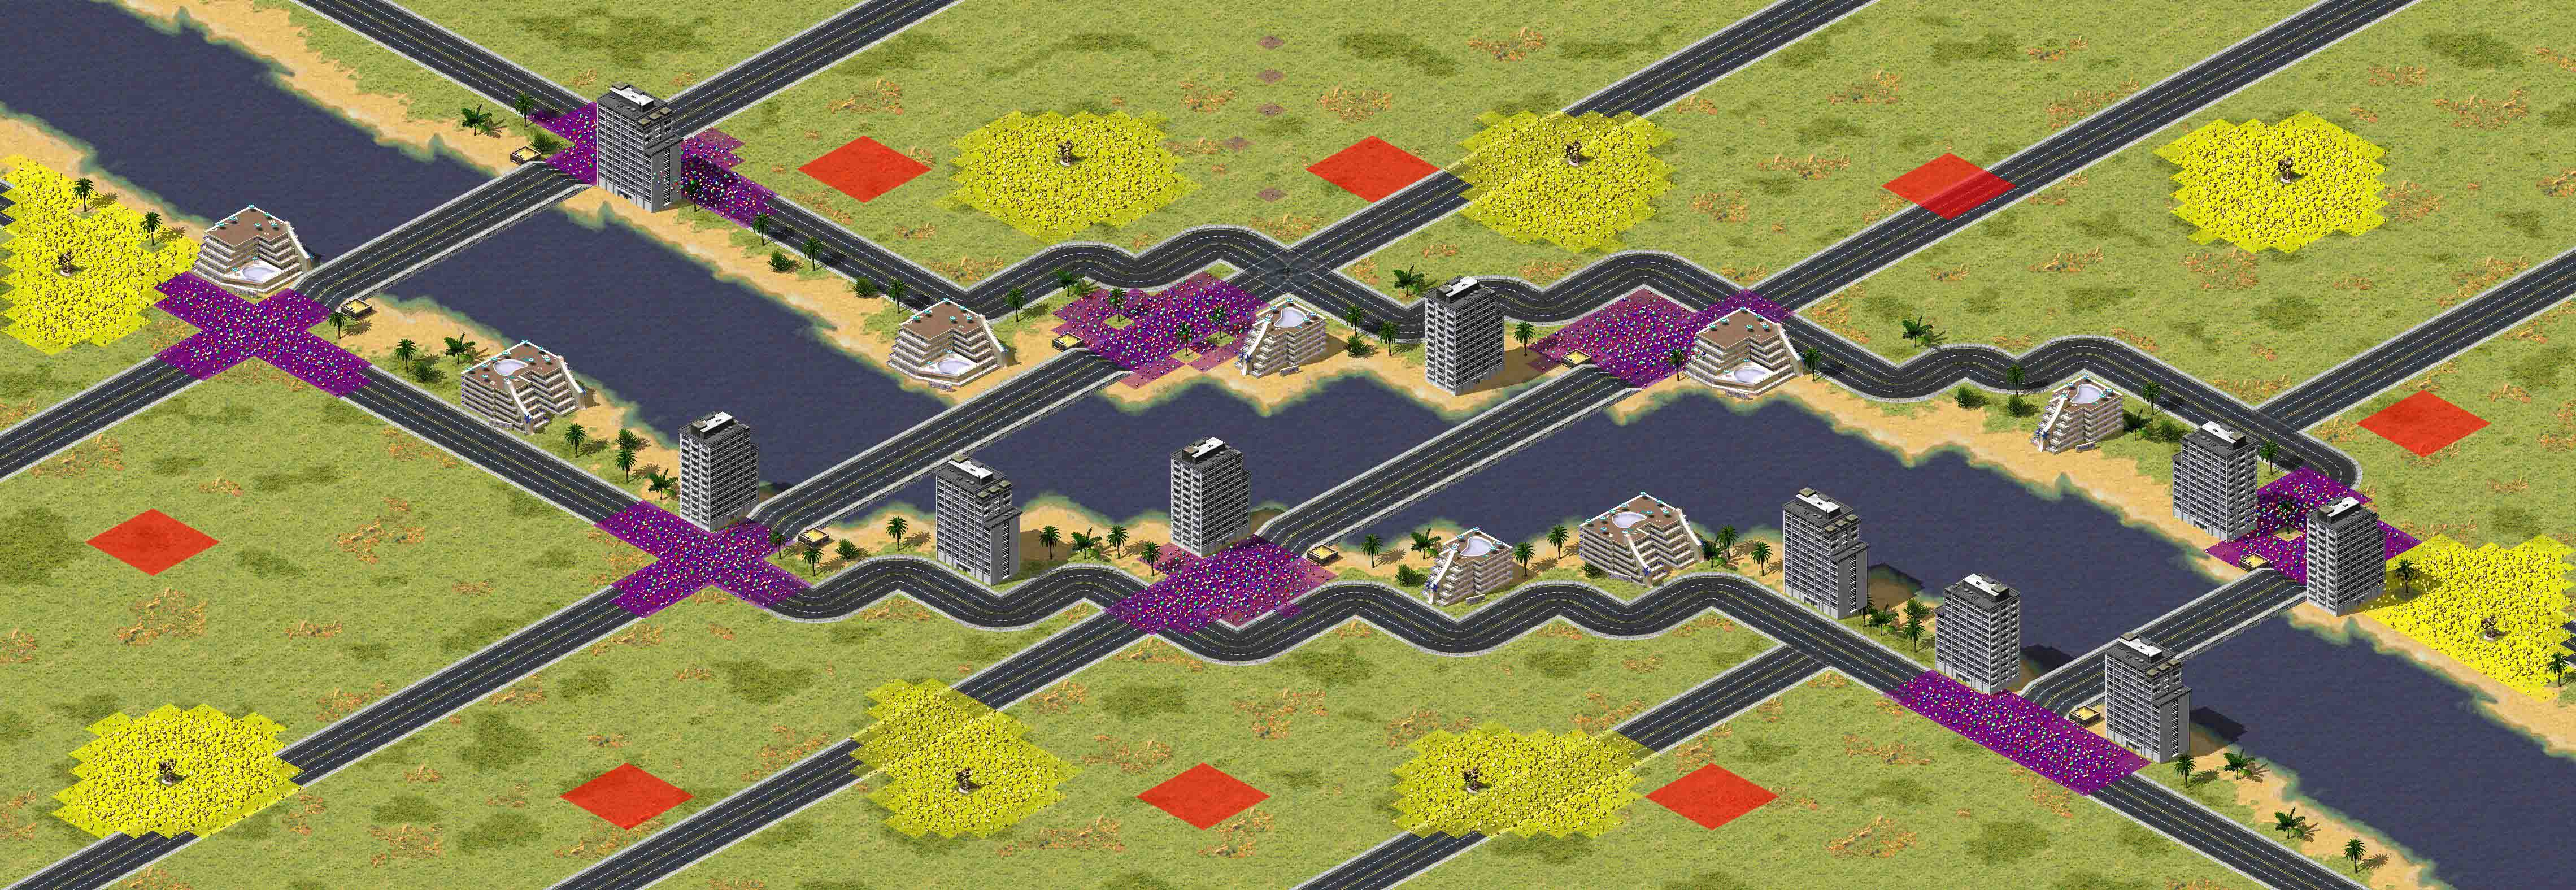 Command and Conquer Red Alert 2 Yuri's Revenge Maps Database: Near on red alert 3 maps, nikos deja vu yuri maps, tiberian sun maps,